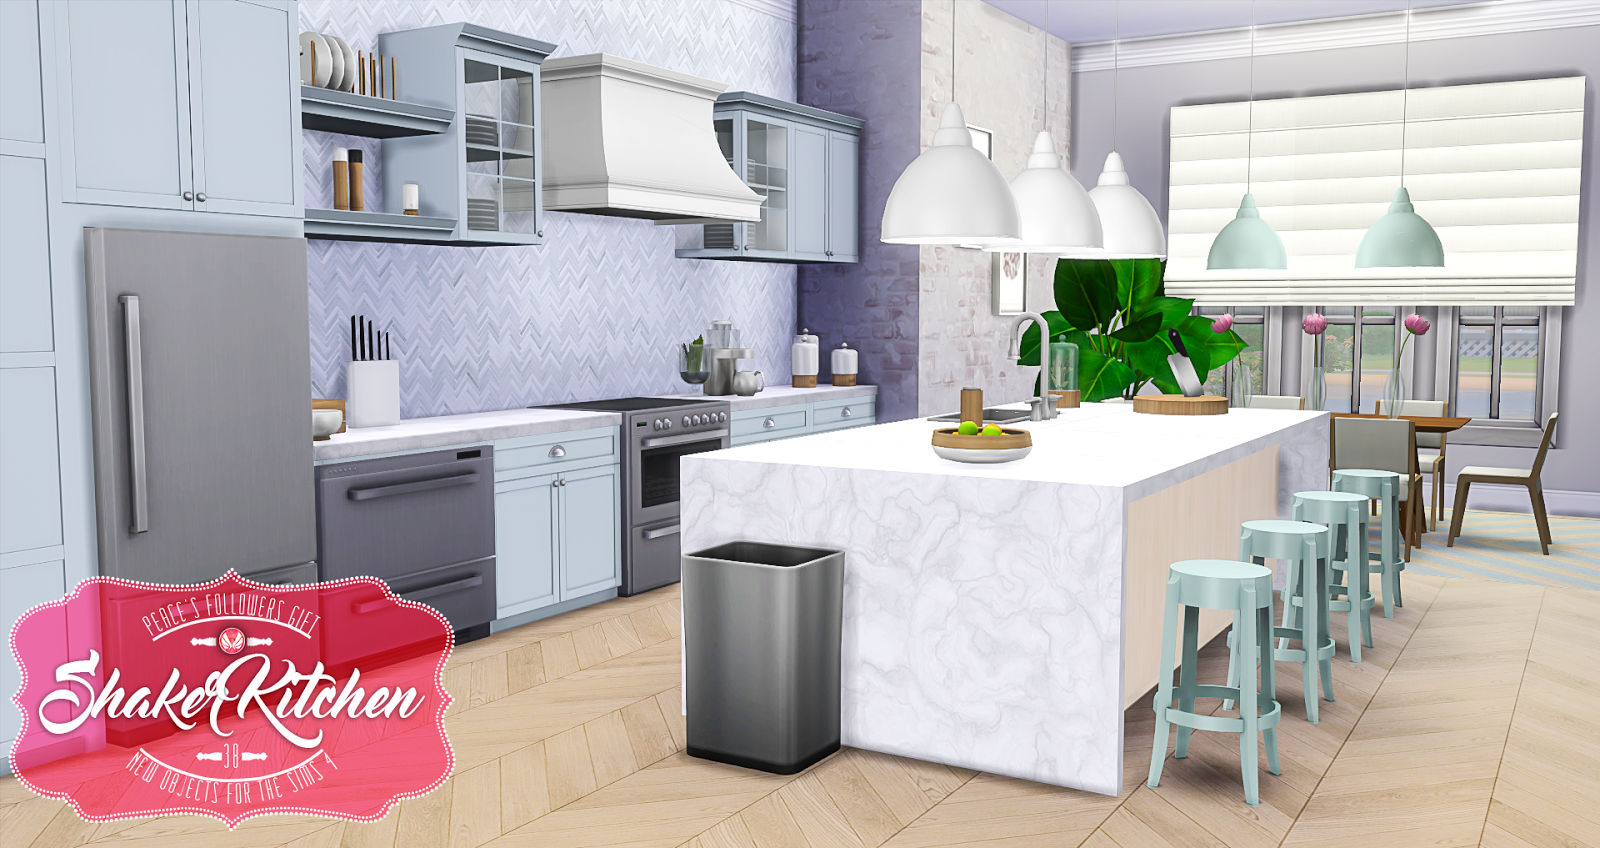 My sims 4 blog updated shaker kitchen by peacemaker ic for Kitchen ideas sims 4